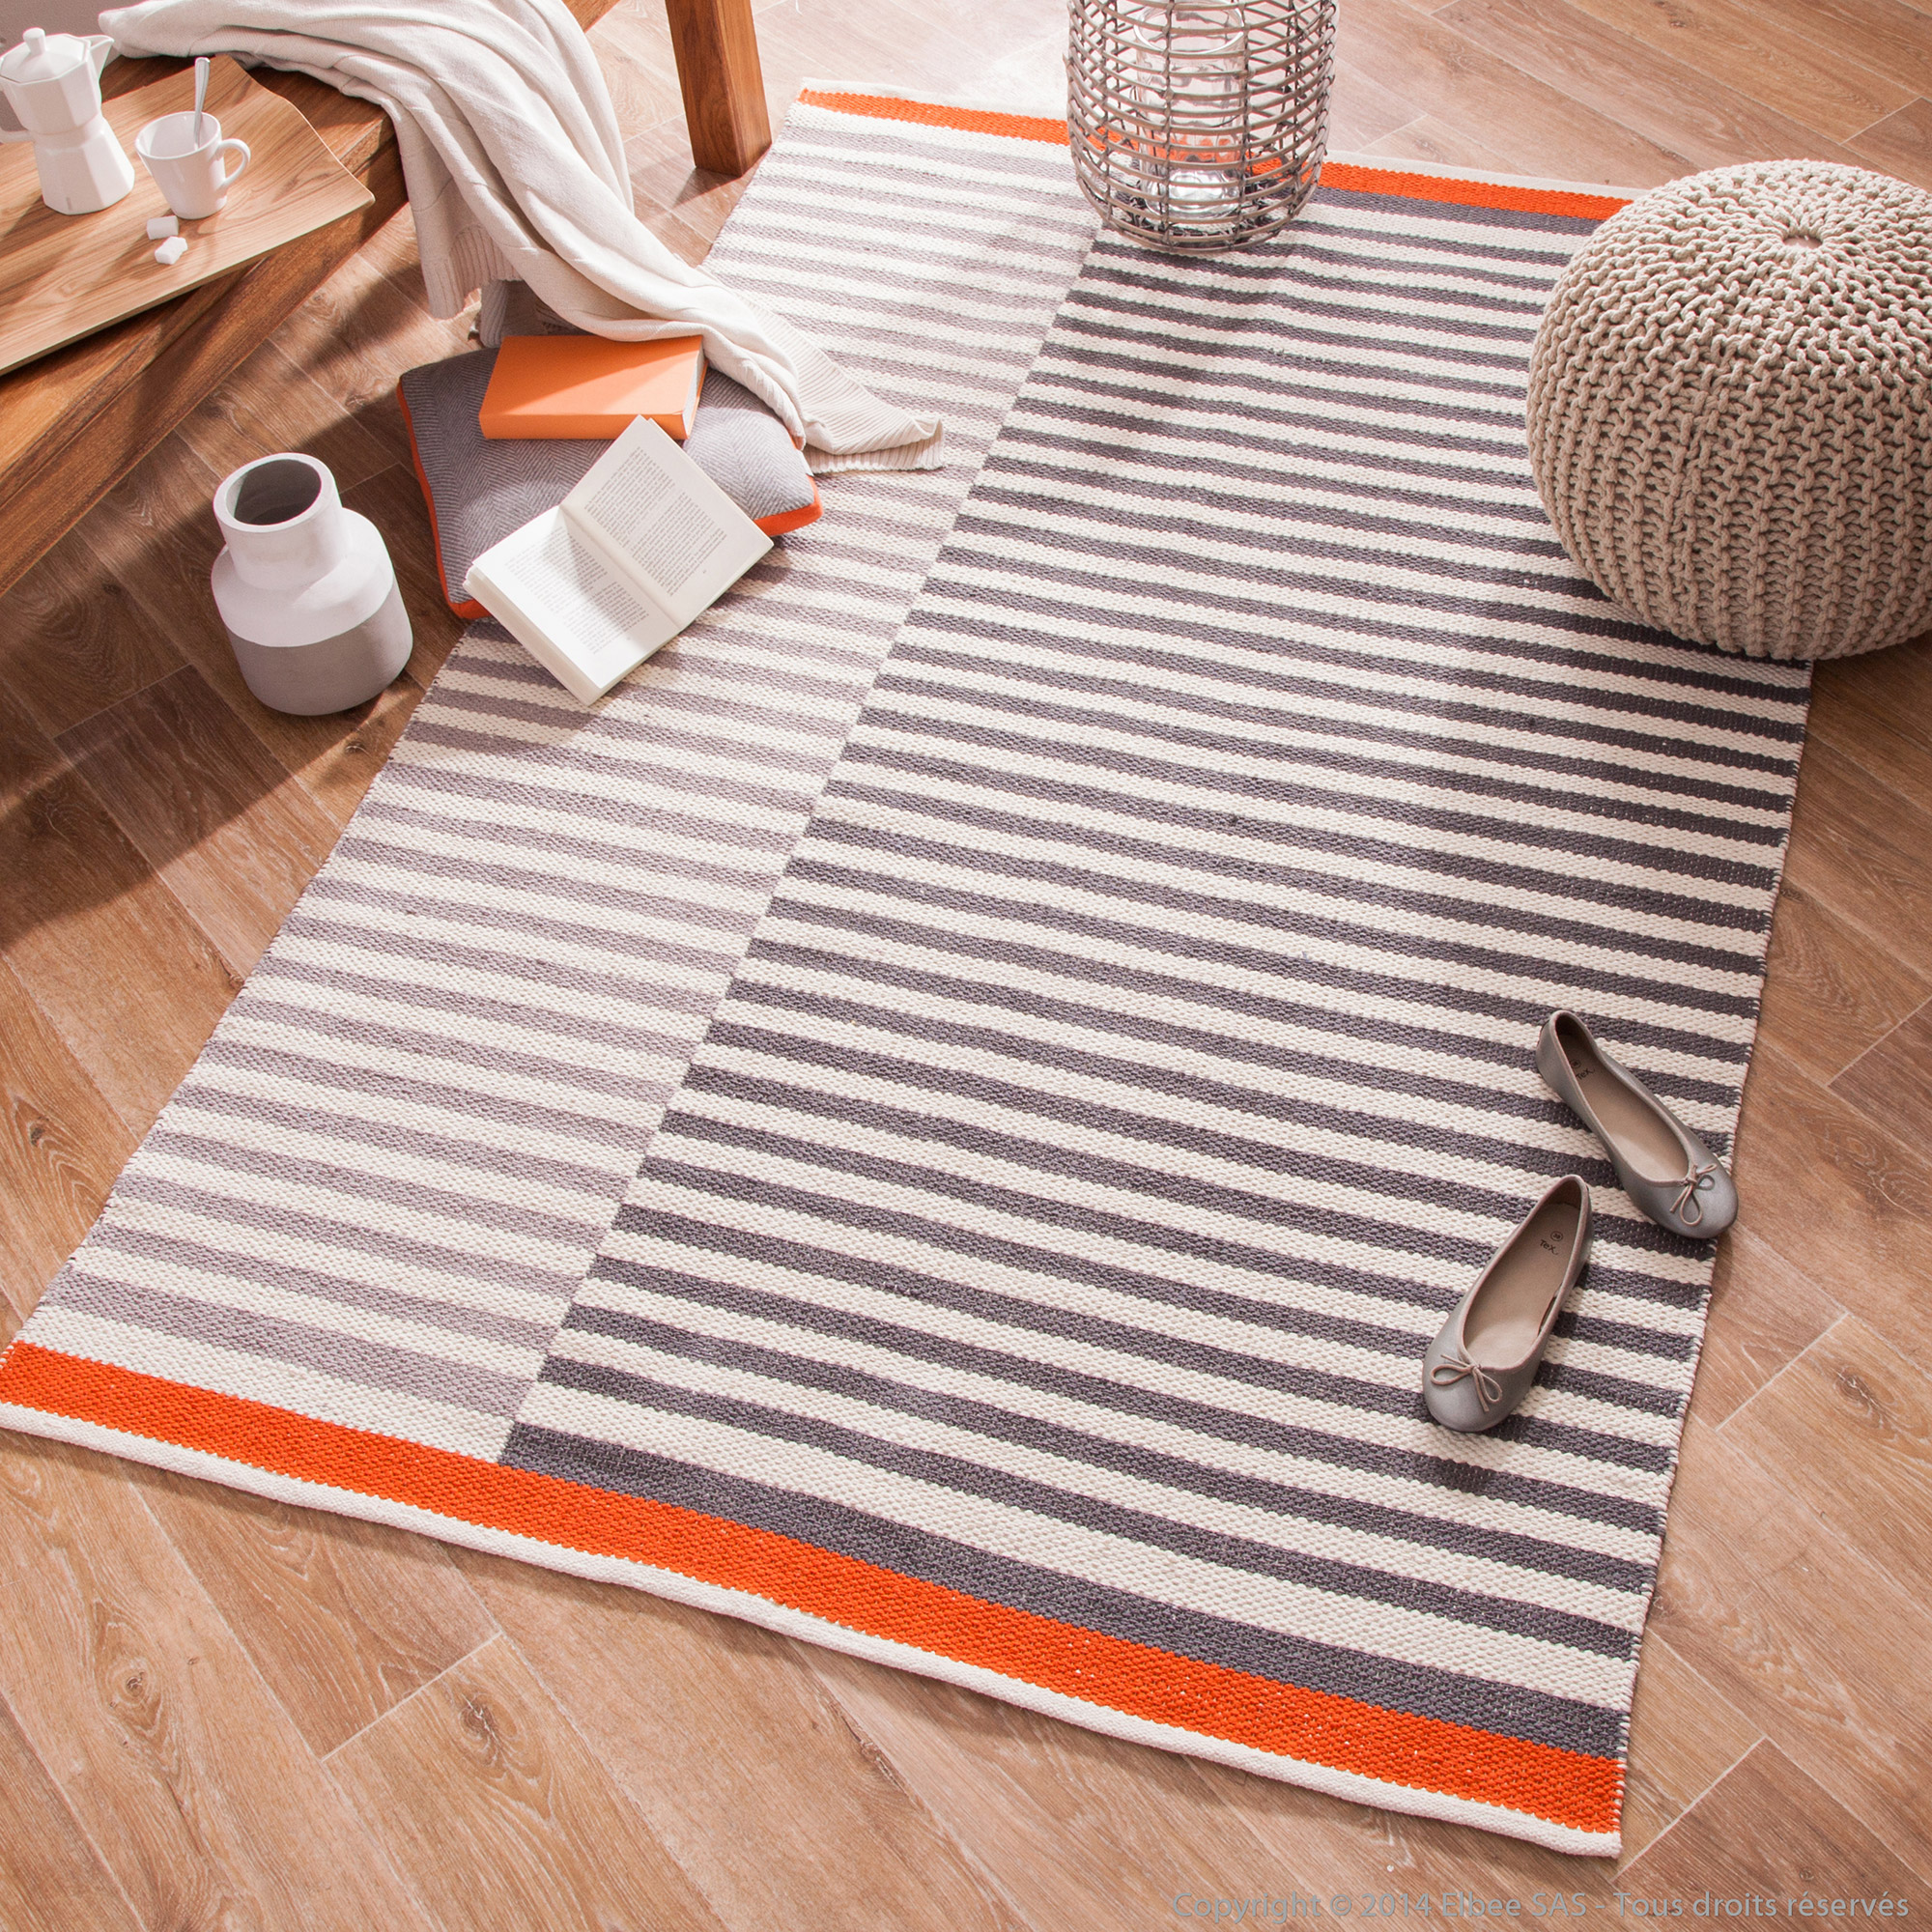 tapis orange et gris